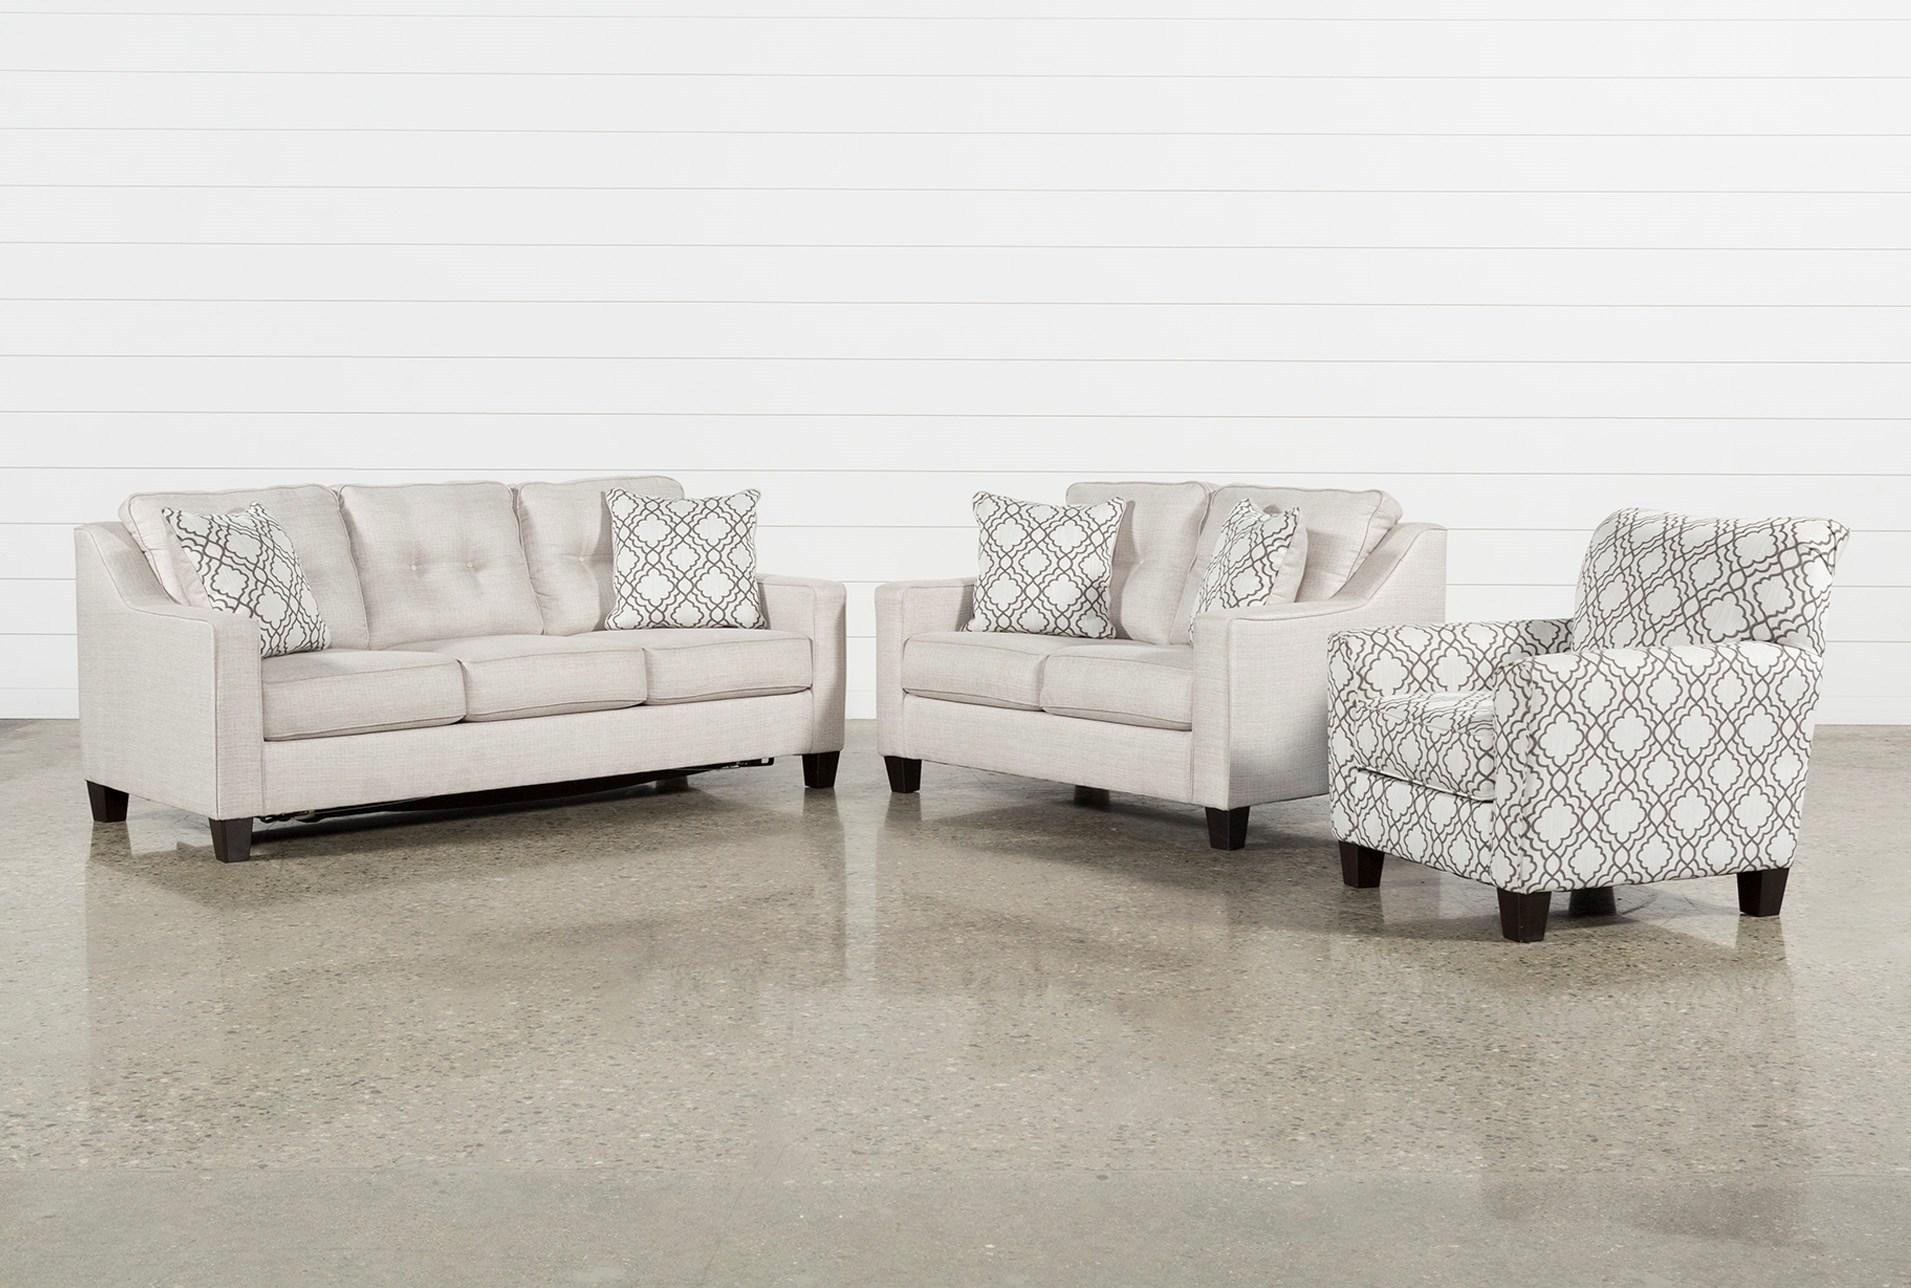 3 Piece Living Room Set Casta Products Pinterest Sofa And Small With Mcdade Ash Sofa Chairs (View 5 of 25)